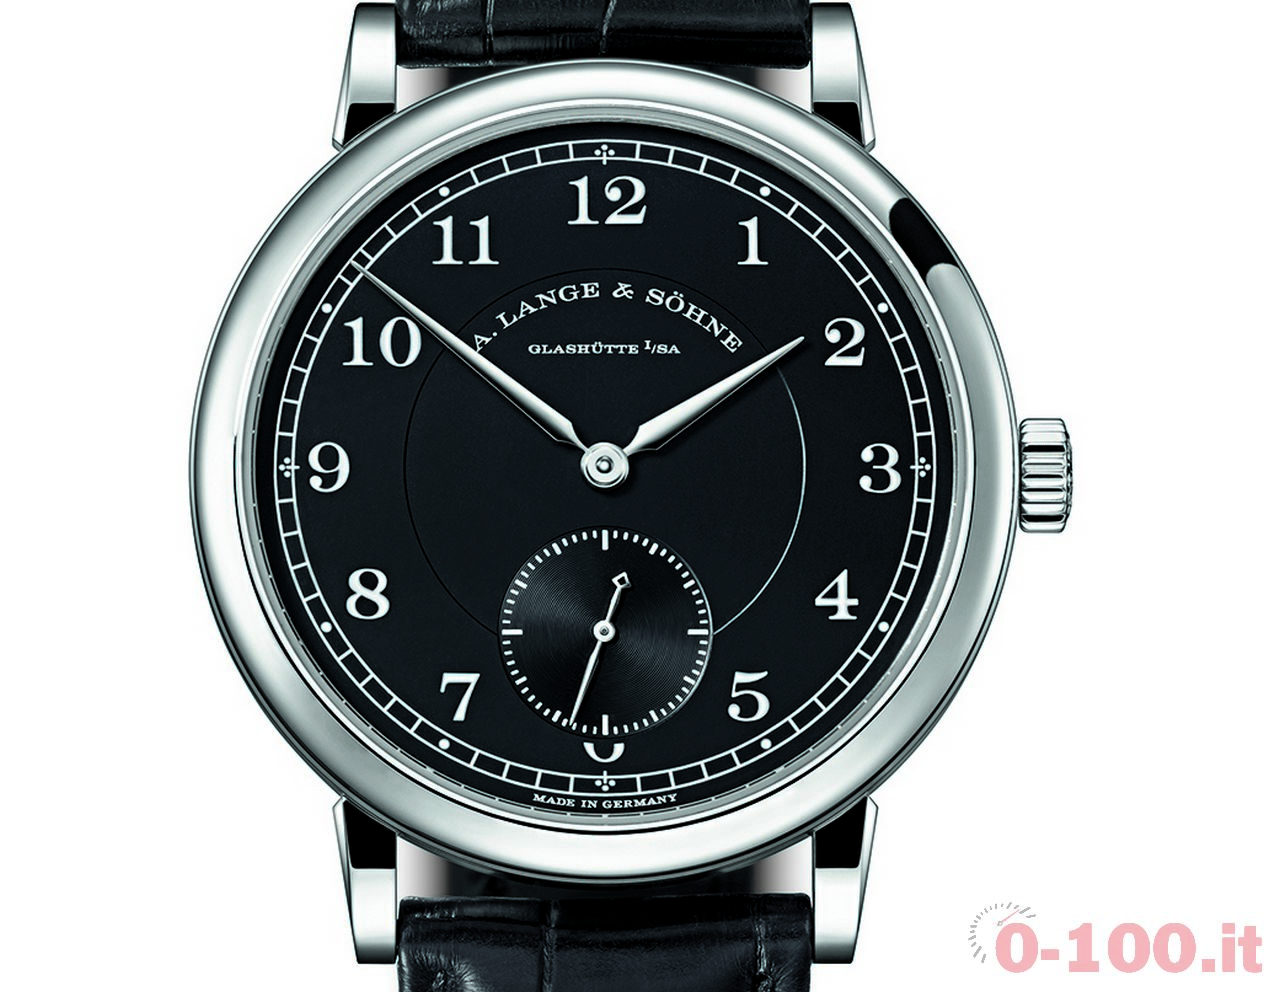 a-lange-sohne-1815-200th-anniversary-f-a-lange-limited-edition_0-100_2